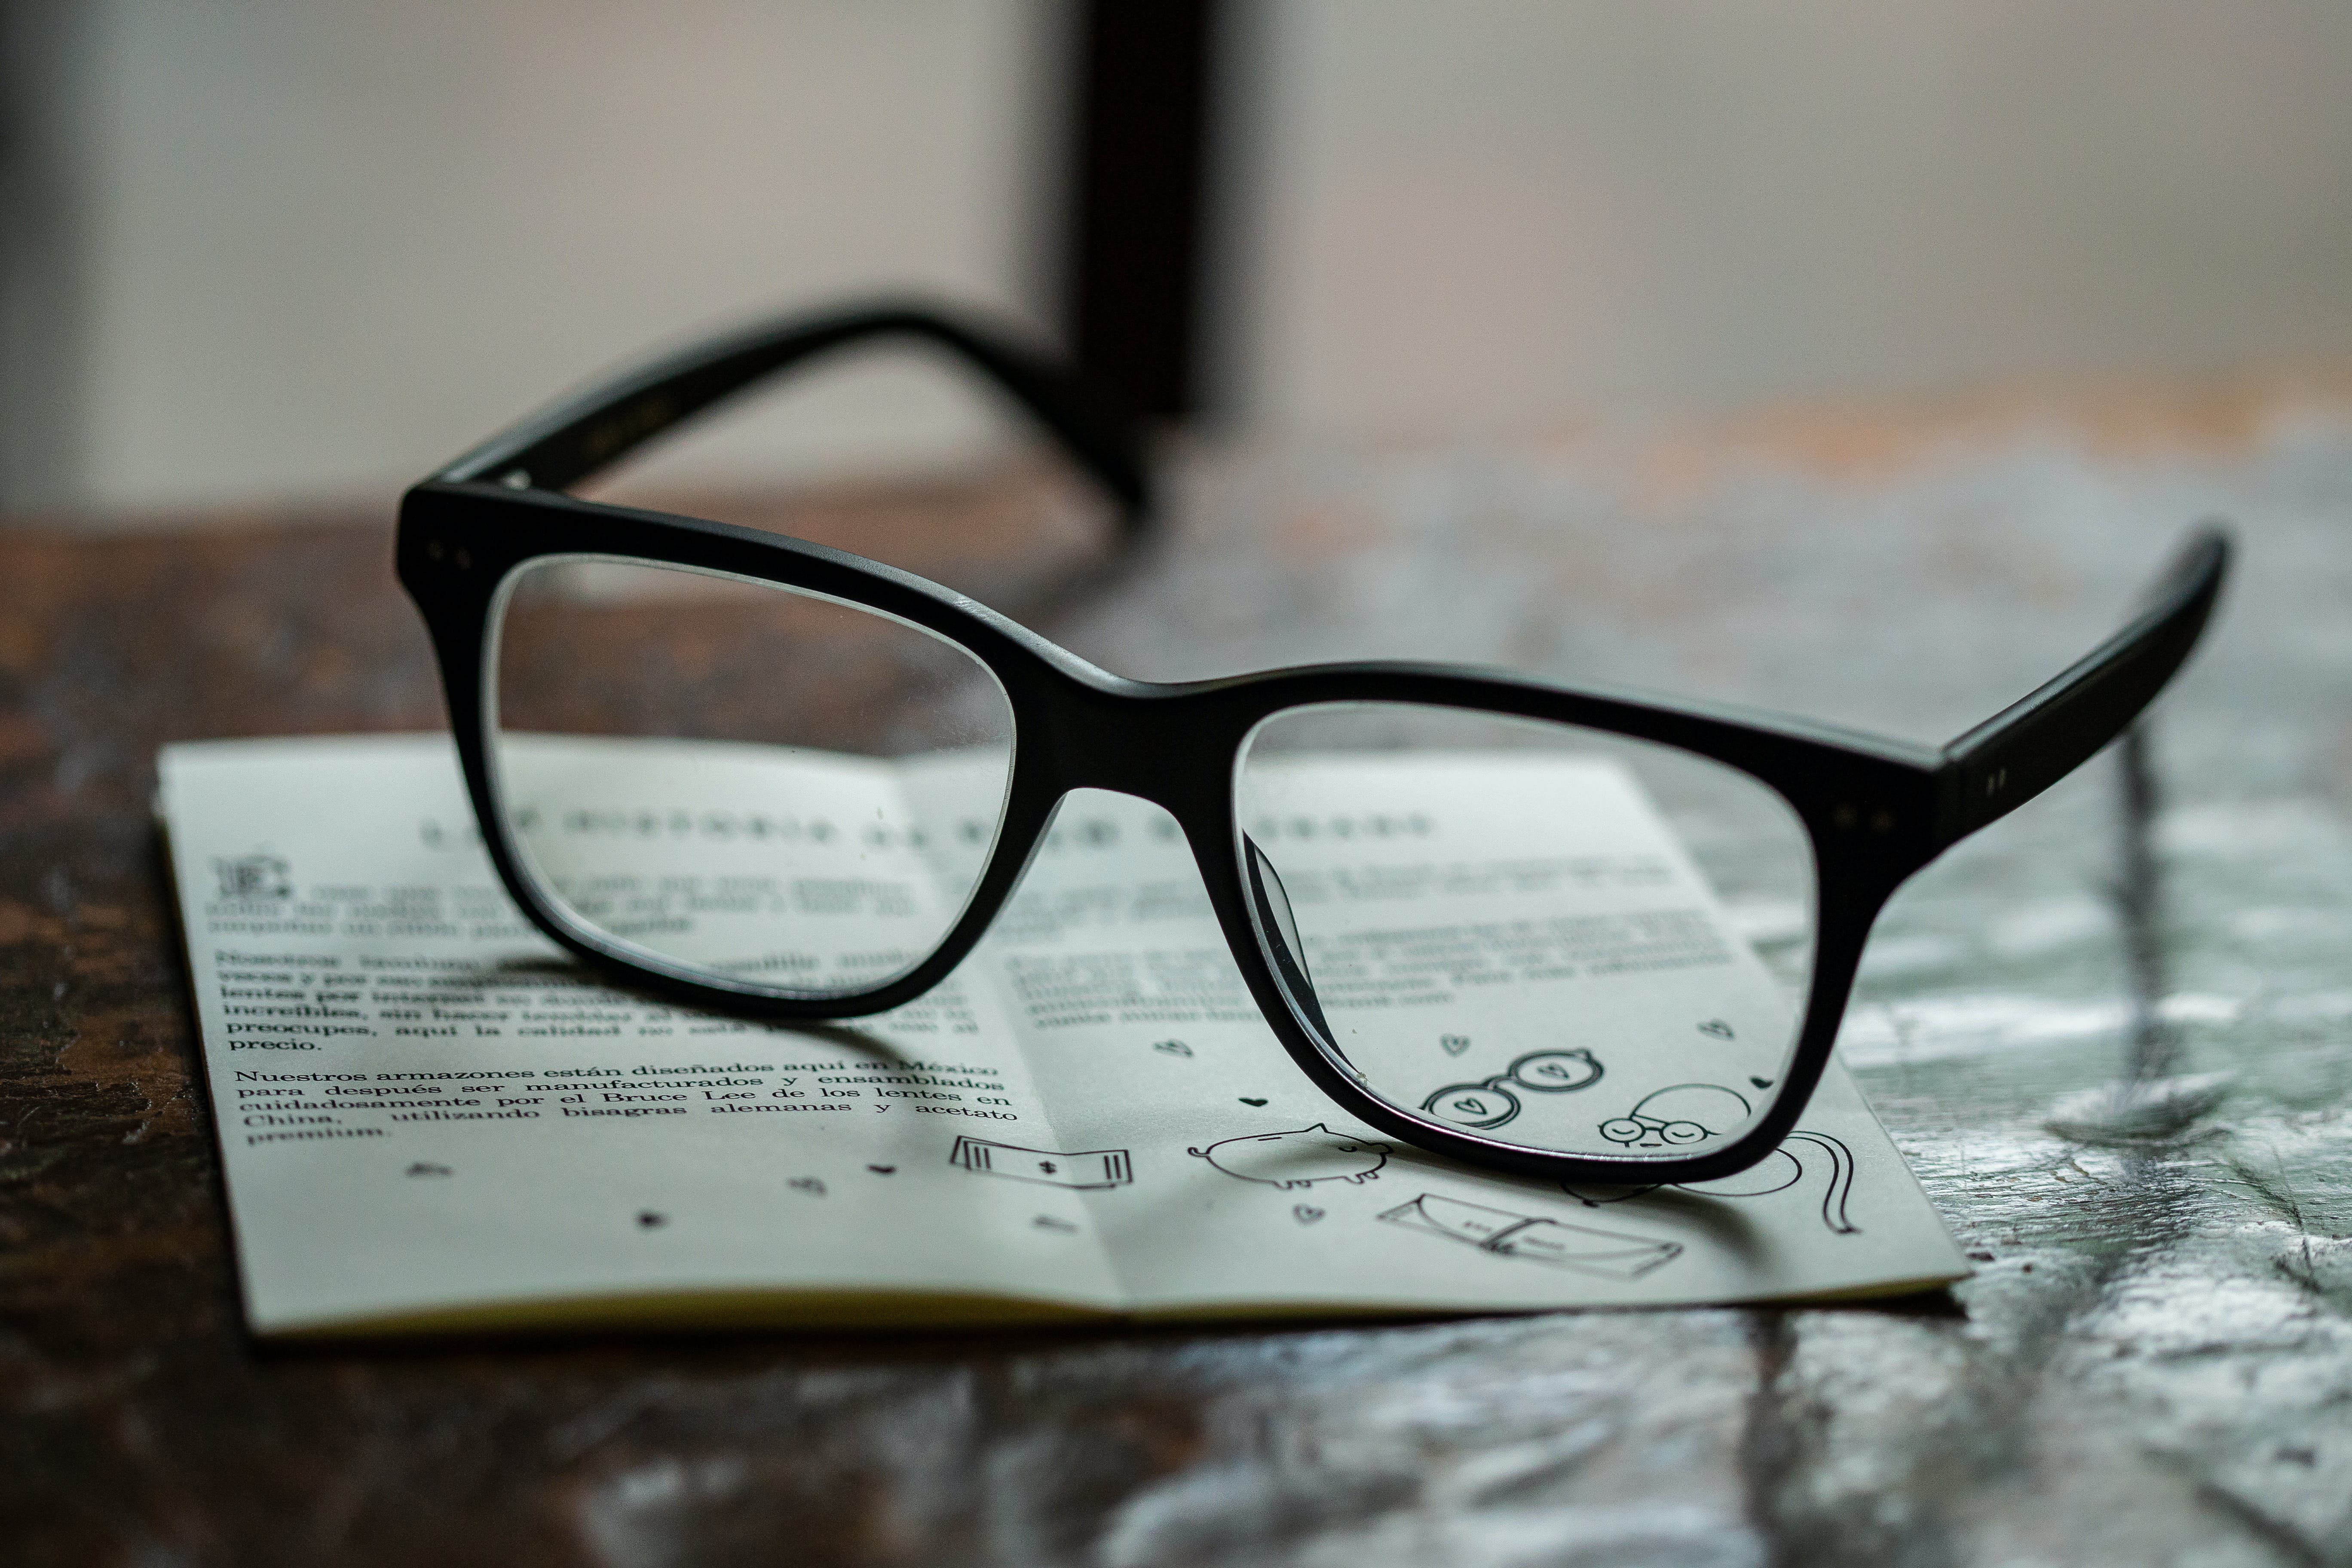 Free stock photo of eye glasses, eyeglasses, glasses, nerd